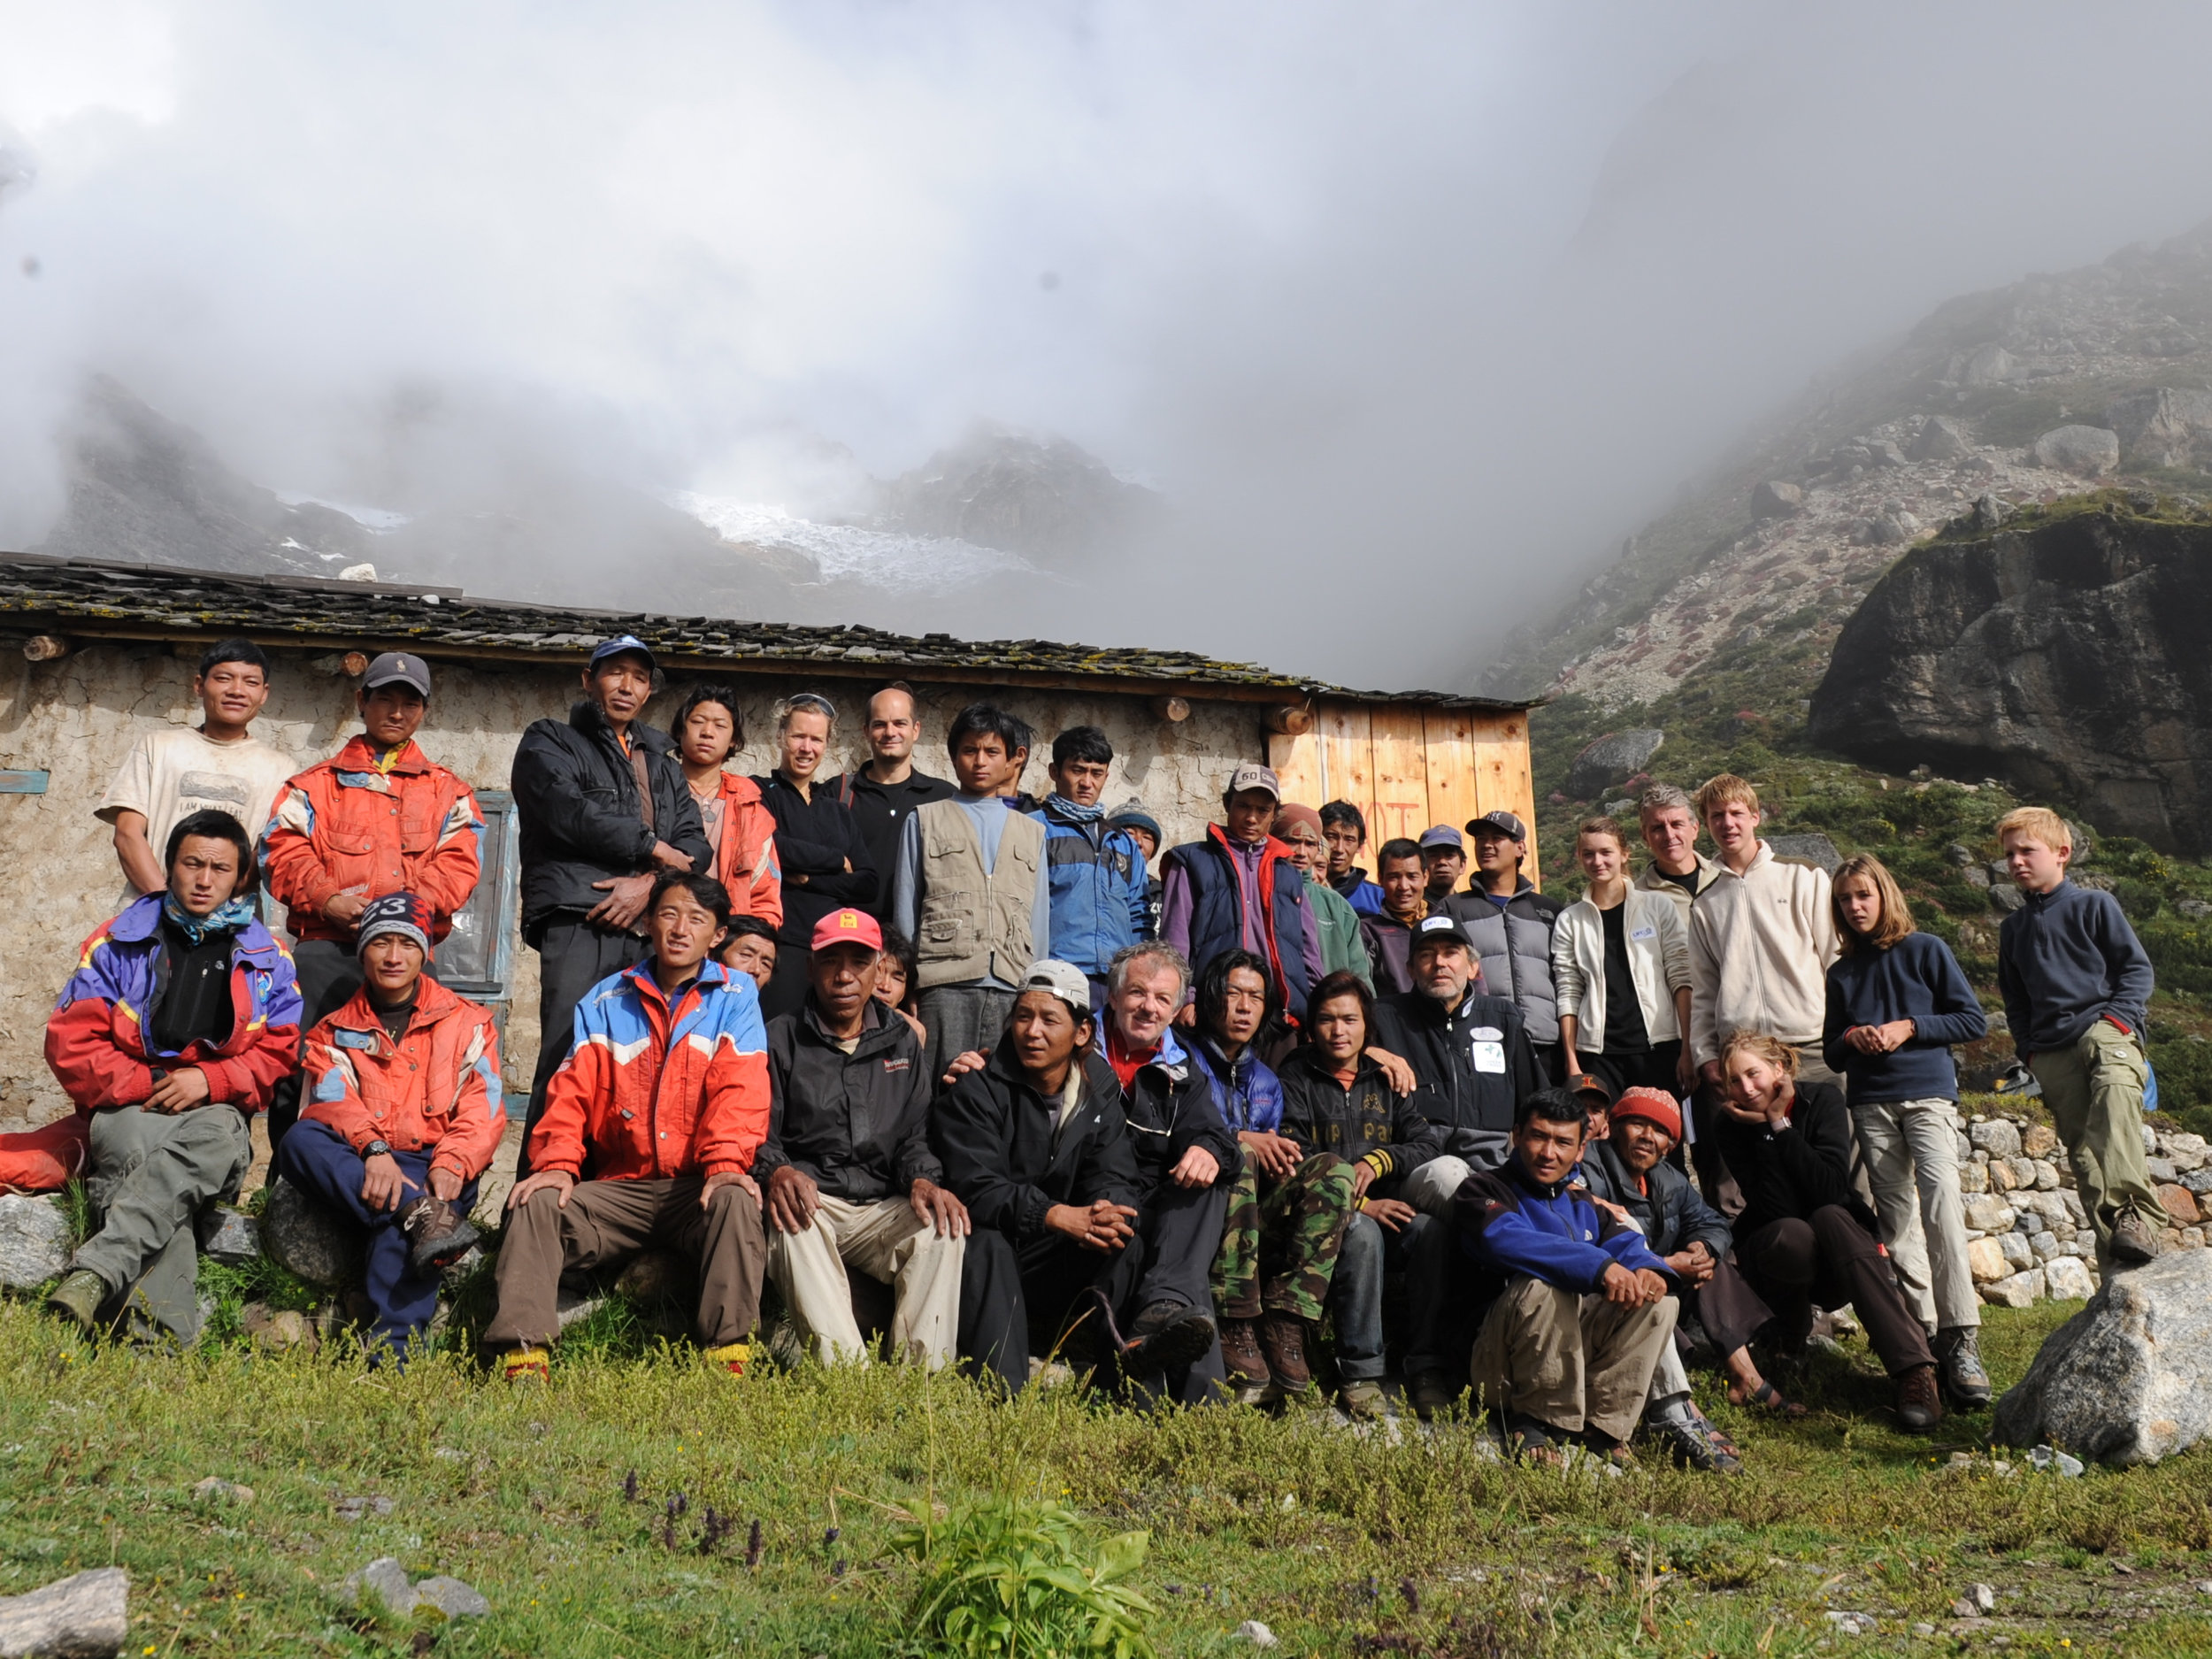 In Tangna, the Pax Arctica Himalaya 2009 team and sherpas - after the expedition.